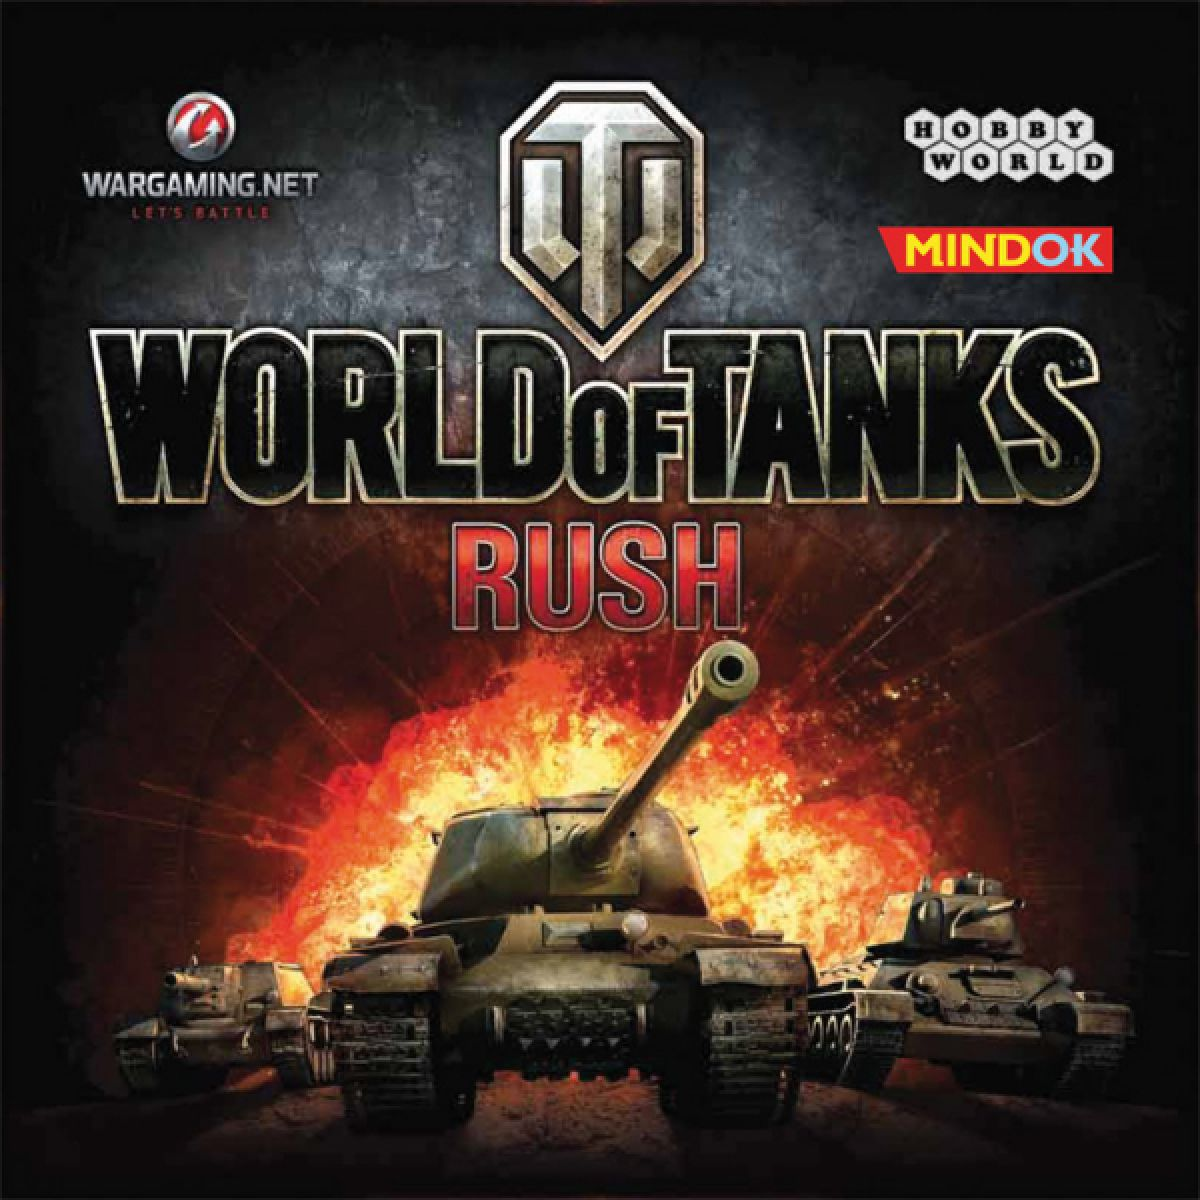 Mindok World of Tank: Rush